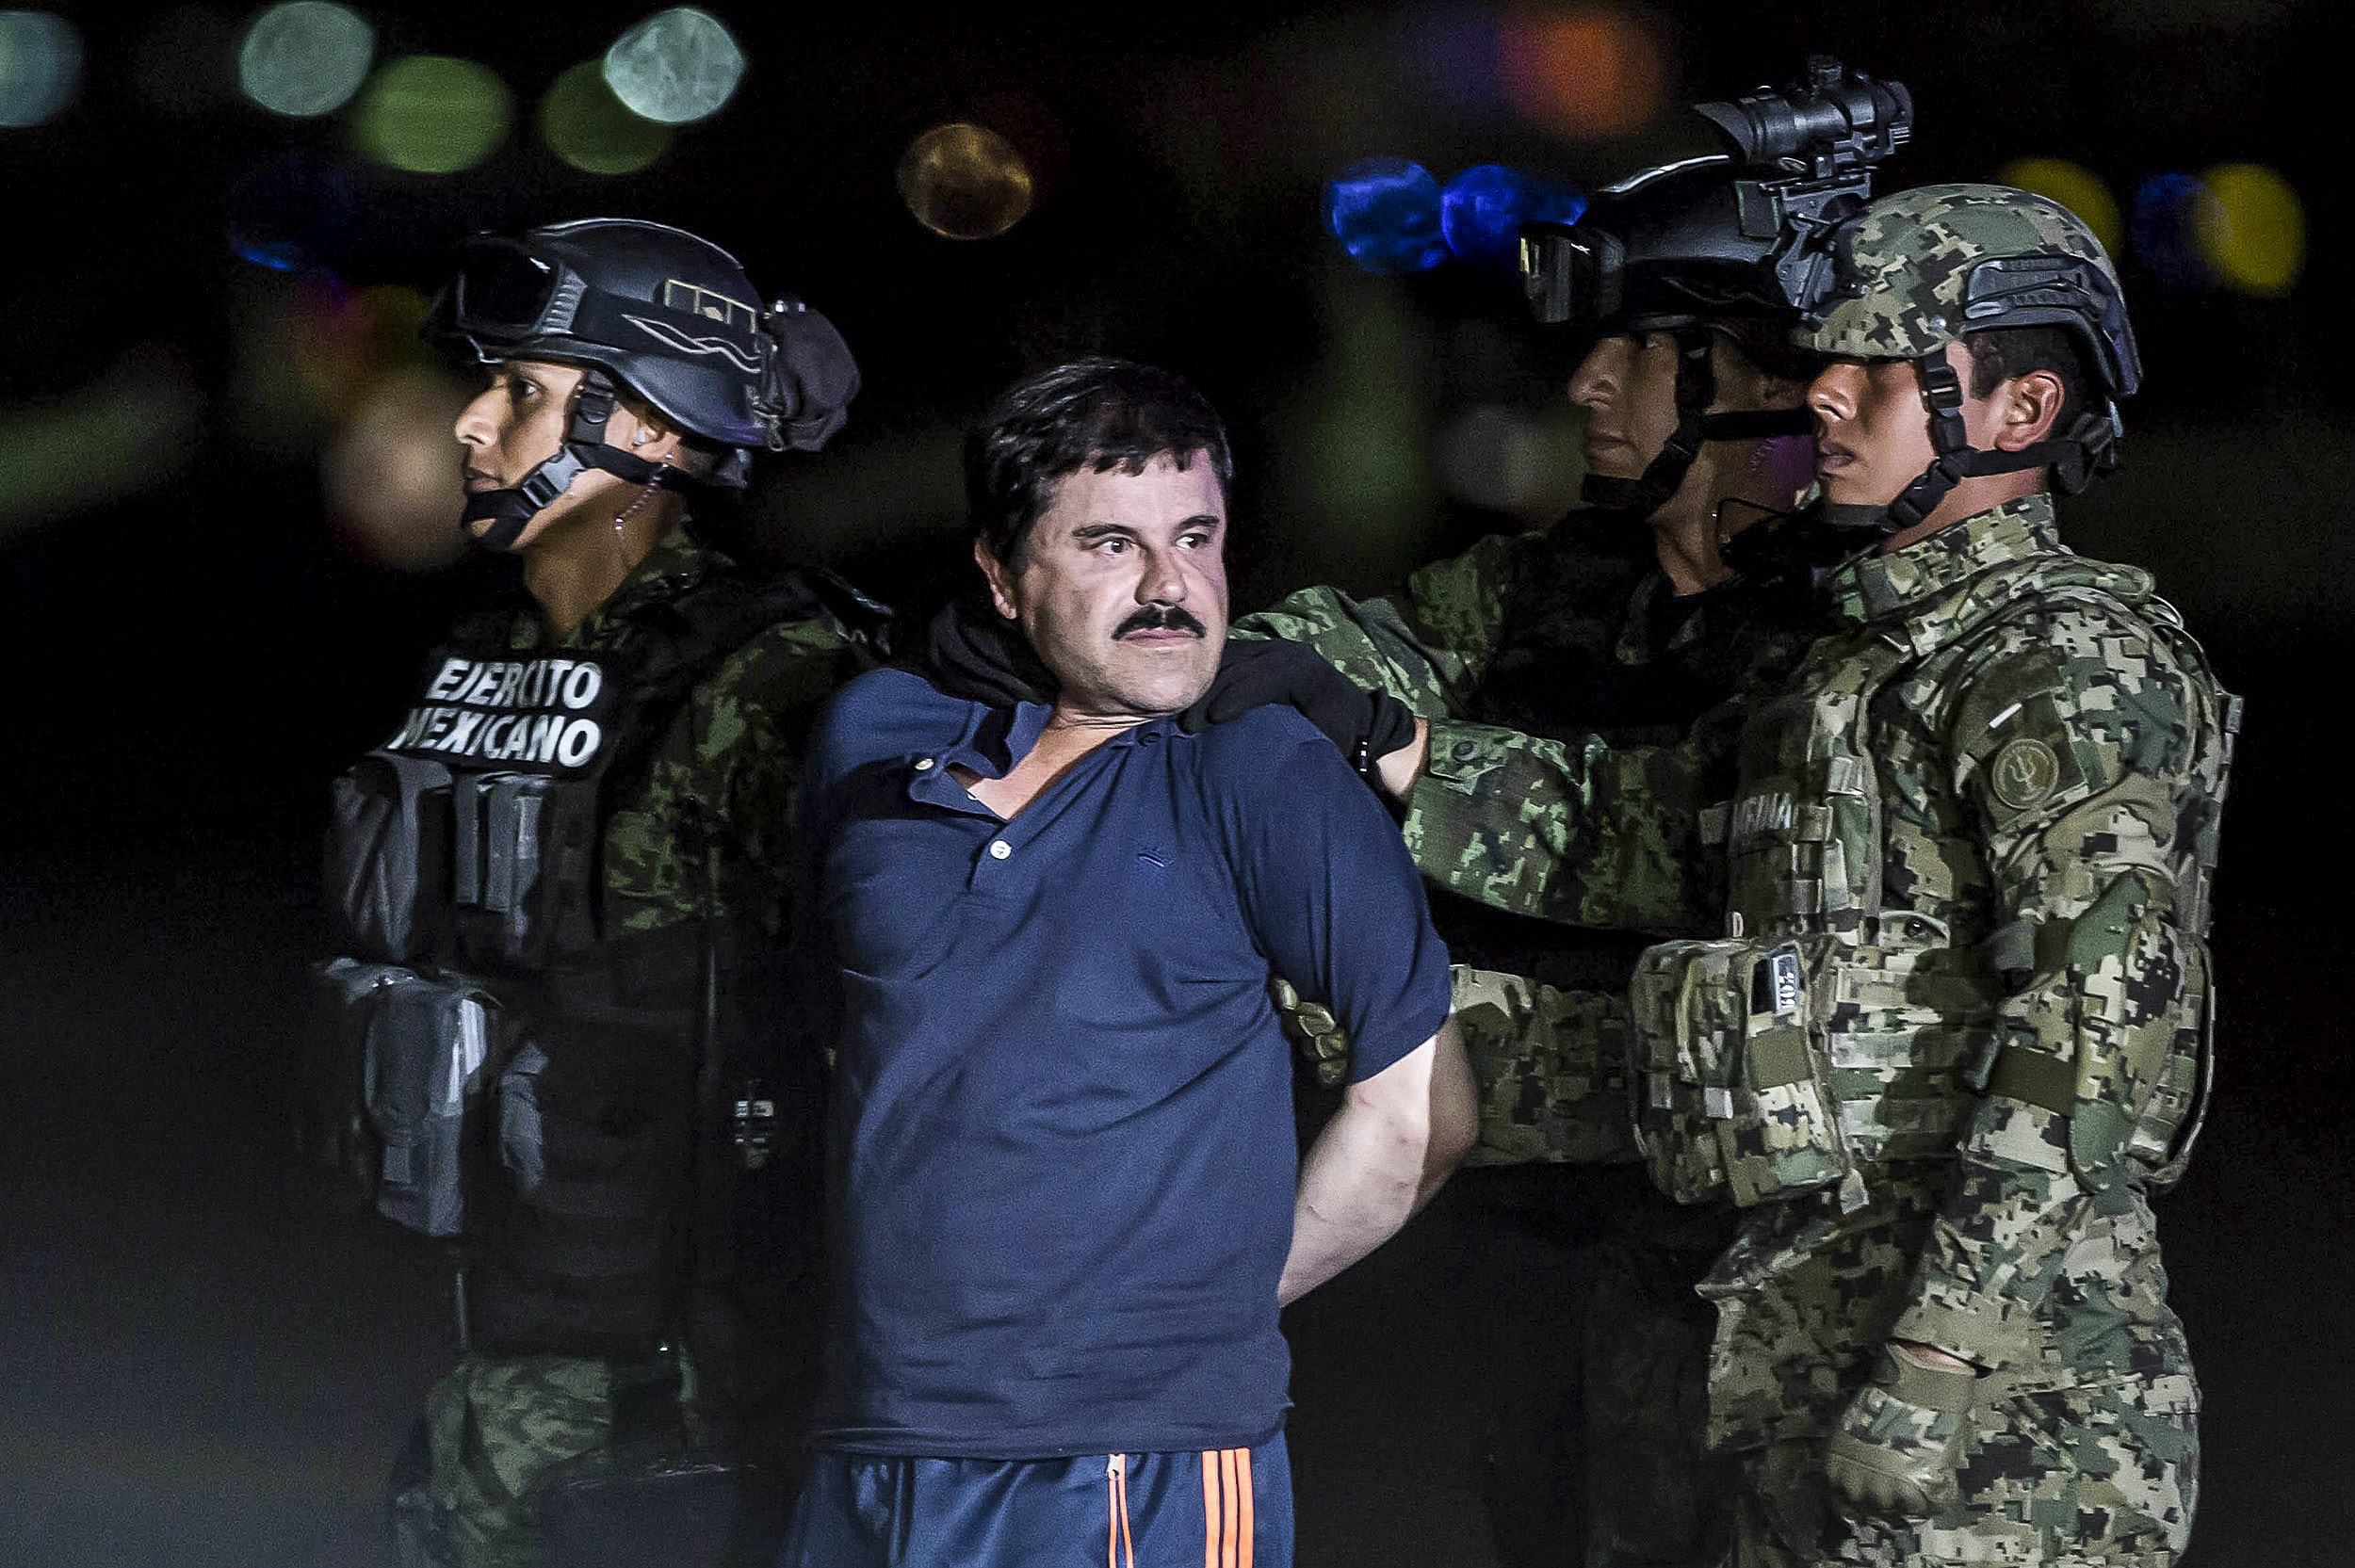 El Chapo is transported to maximum security prison in Mexico City on Jan. 8, 2016.